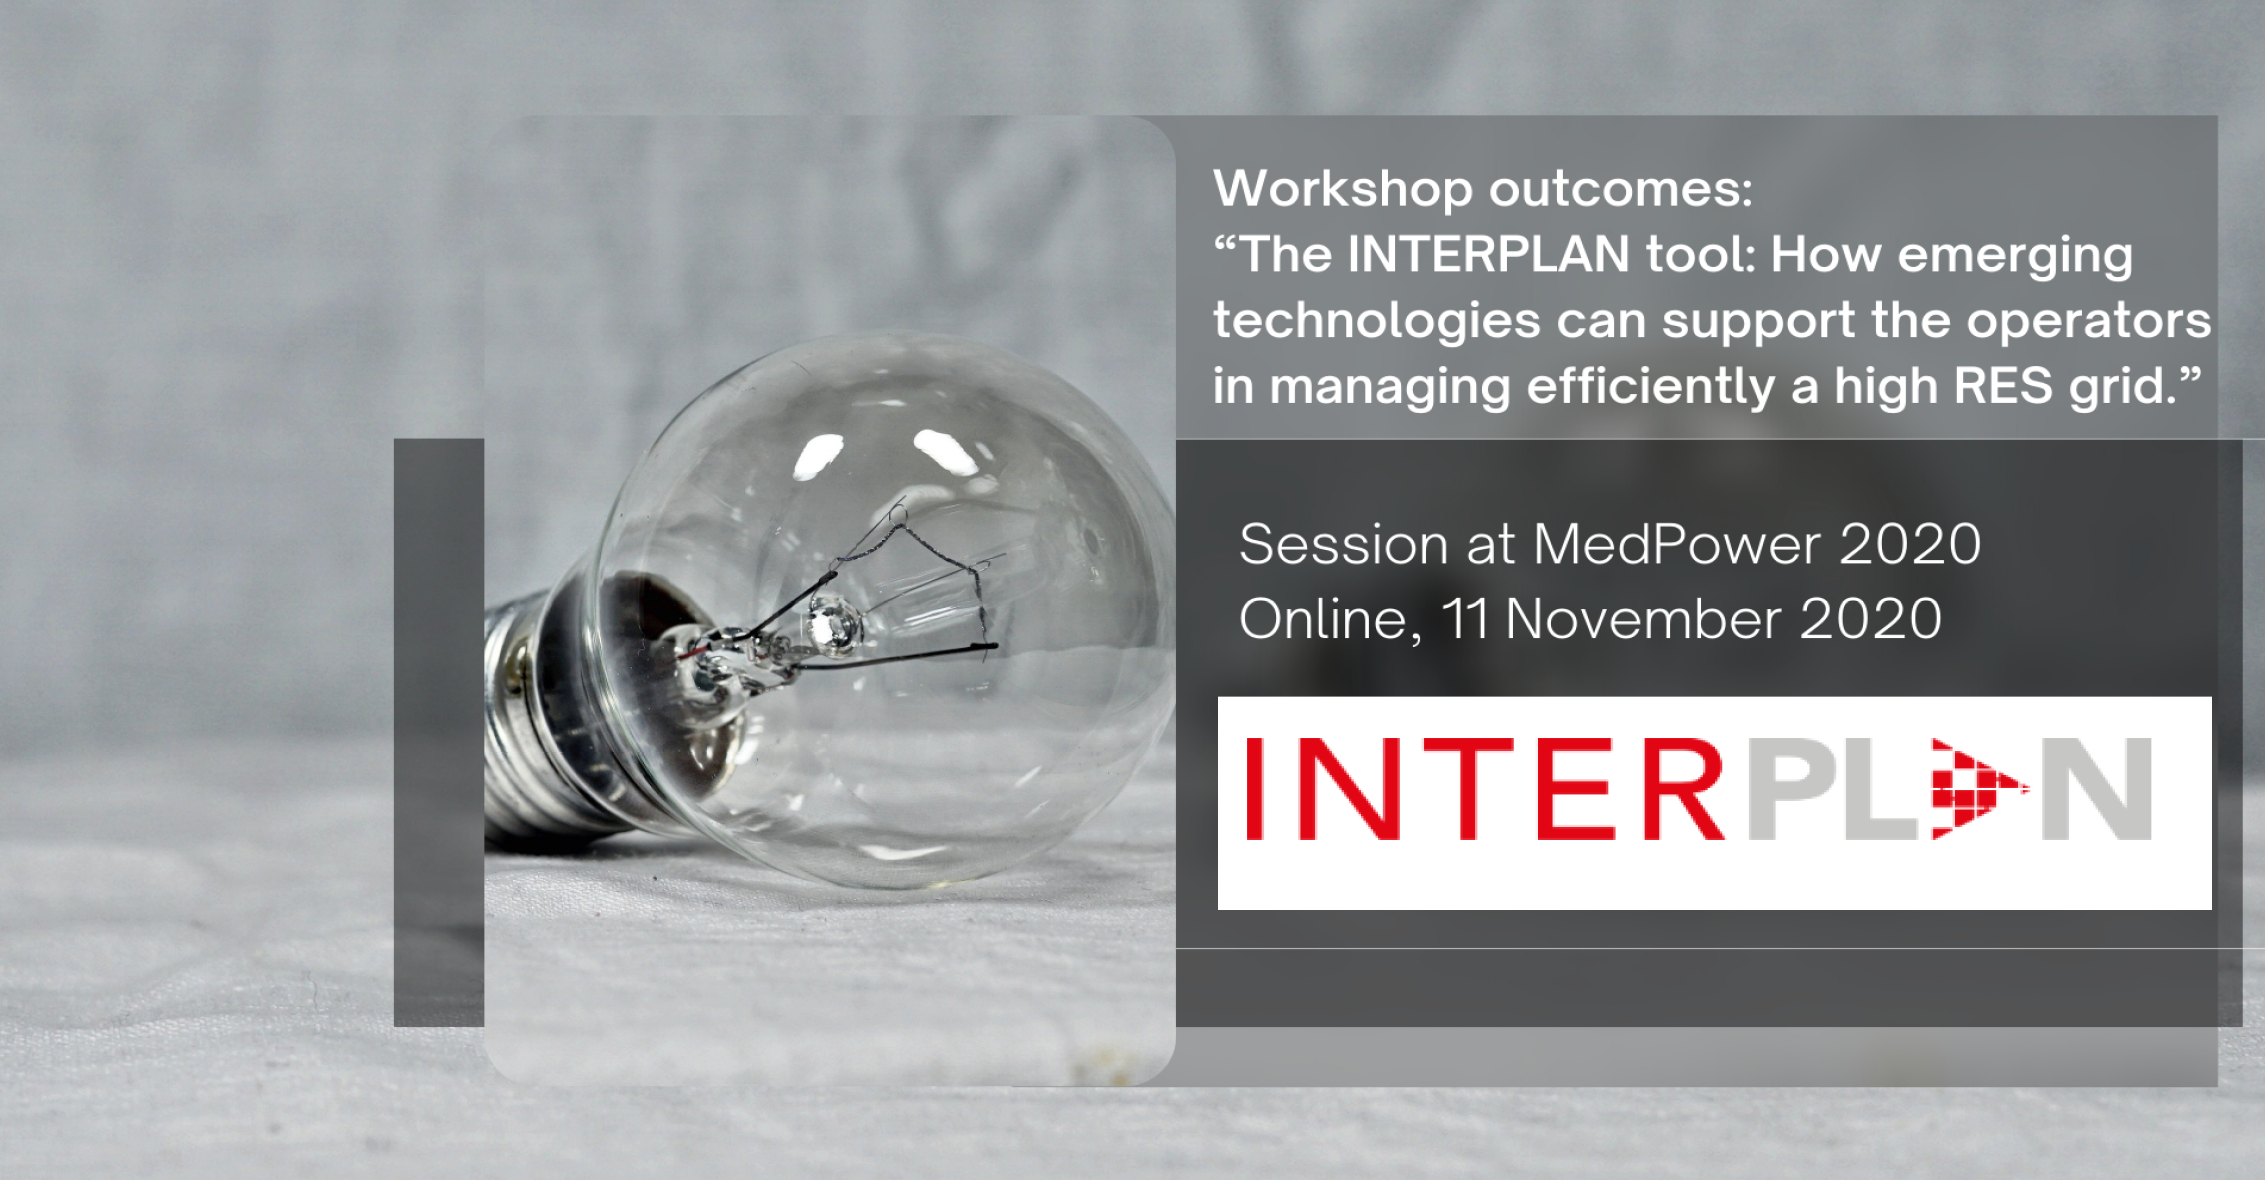 INTERPLAN session at MedPower 2020 outcomes